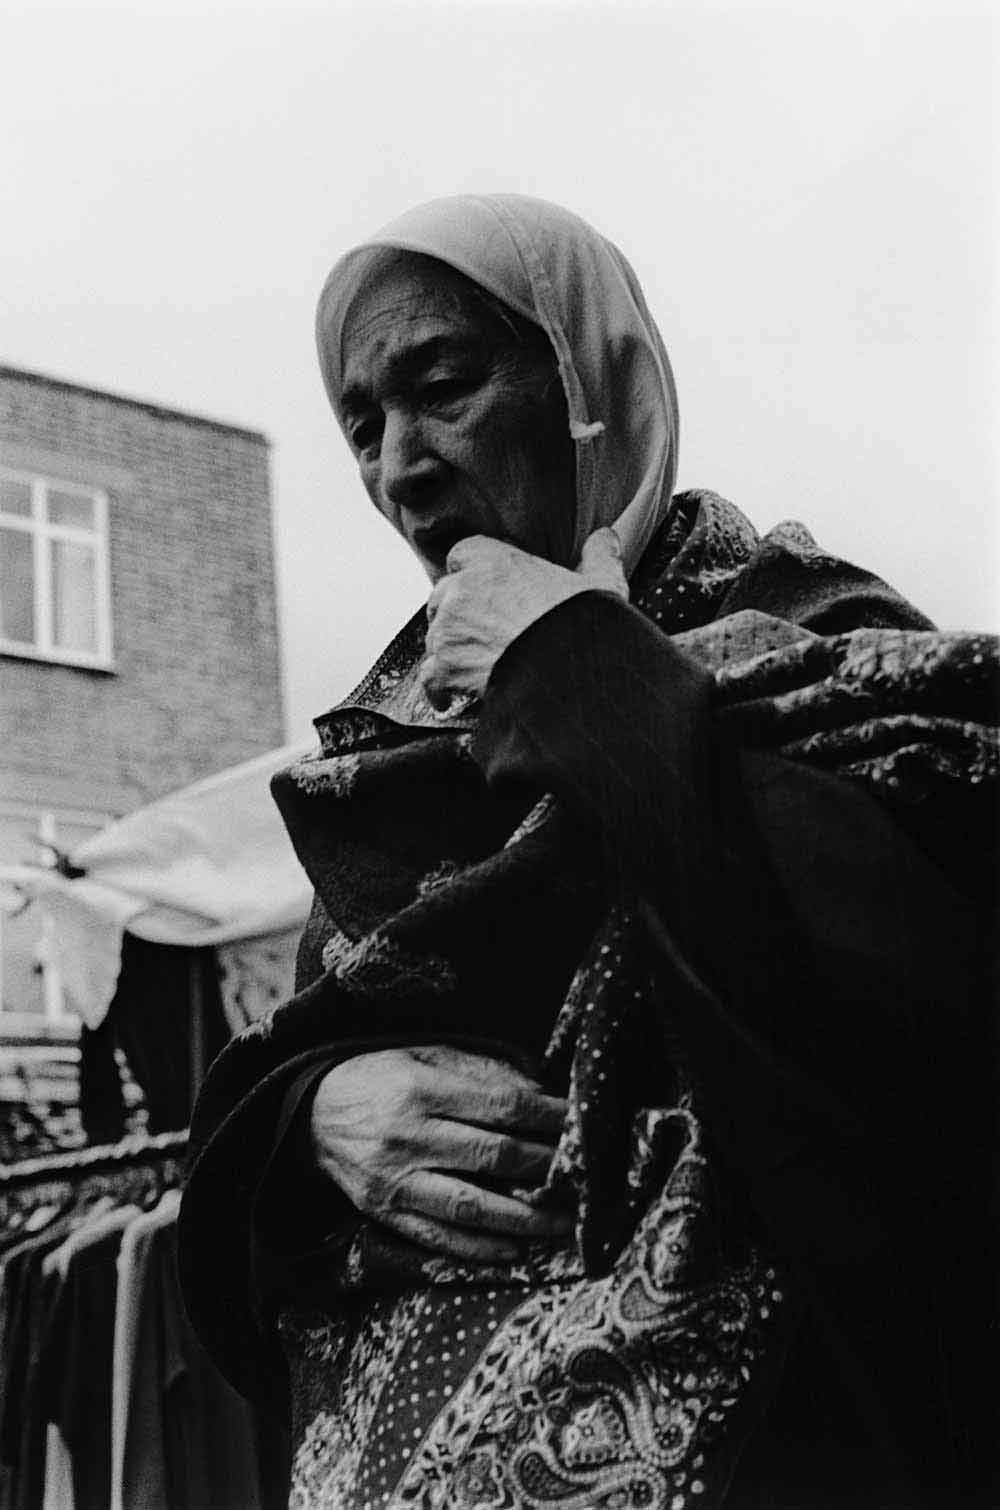 Asian woman in a headscarf, part of a series of photographs by Stephie Devred that captures the unique spirit of the East London street market, Roman Road Market.